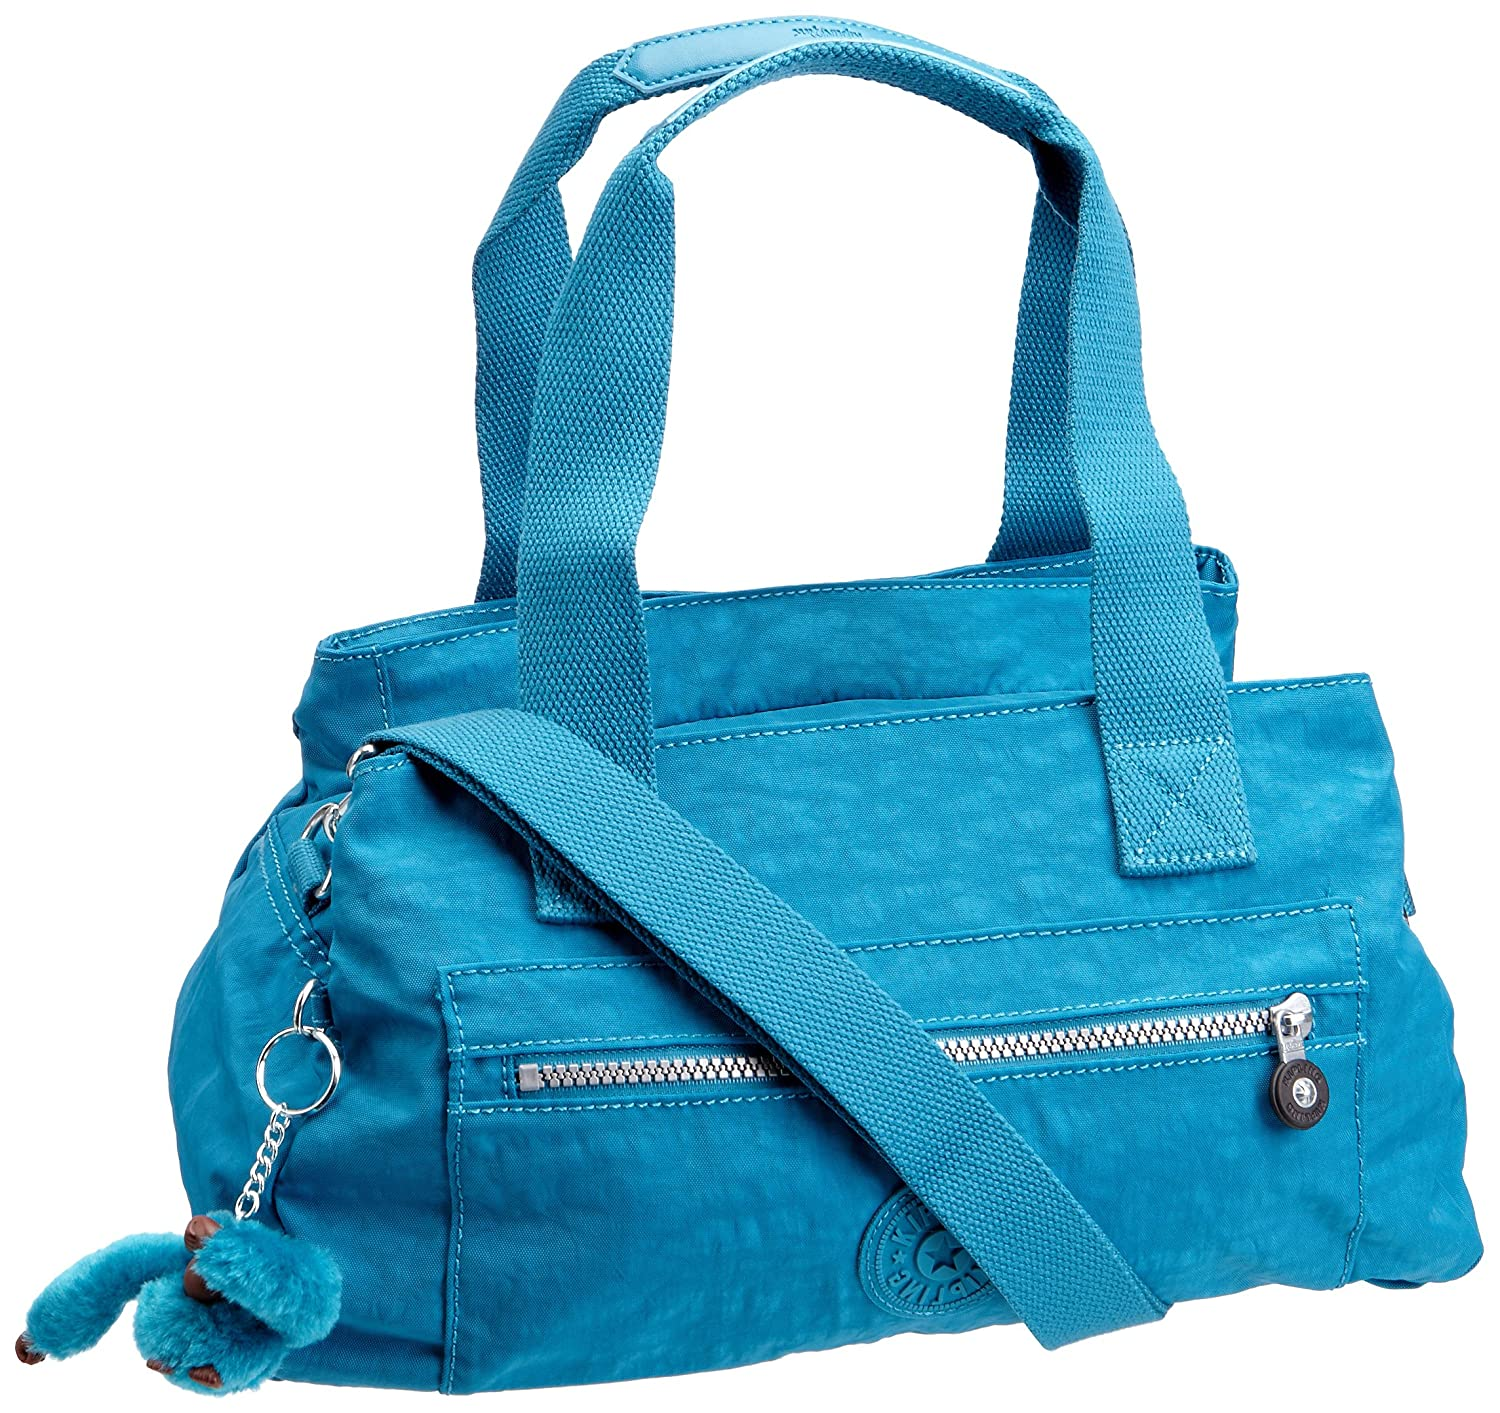 Kipling Women'S Cammie Small Shoulder Bag Blue Teal 26